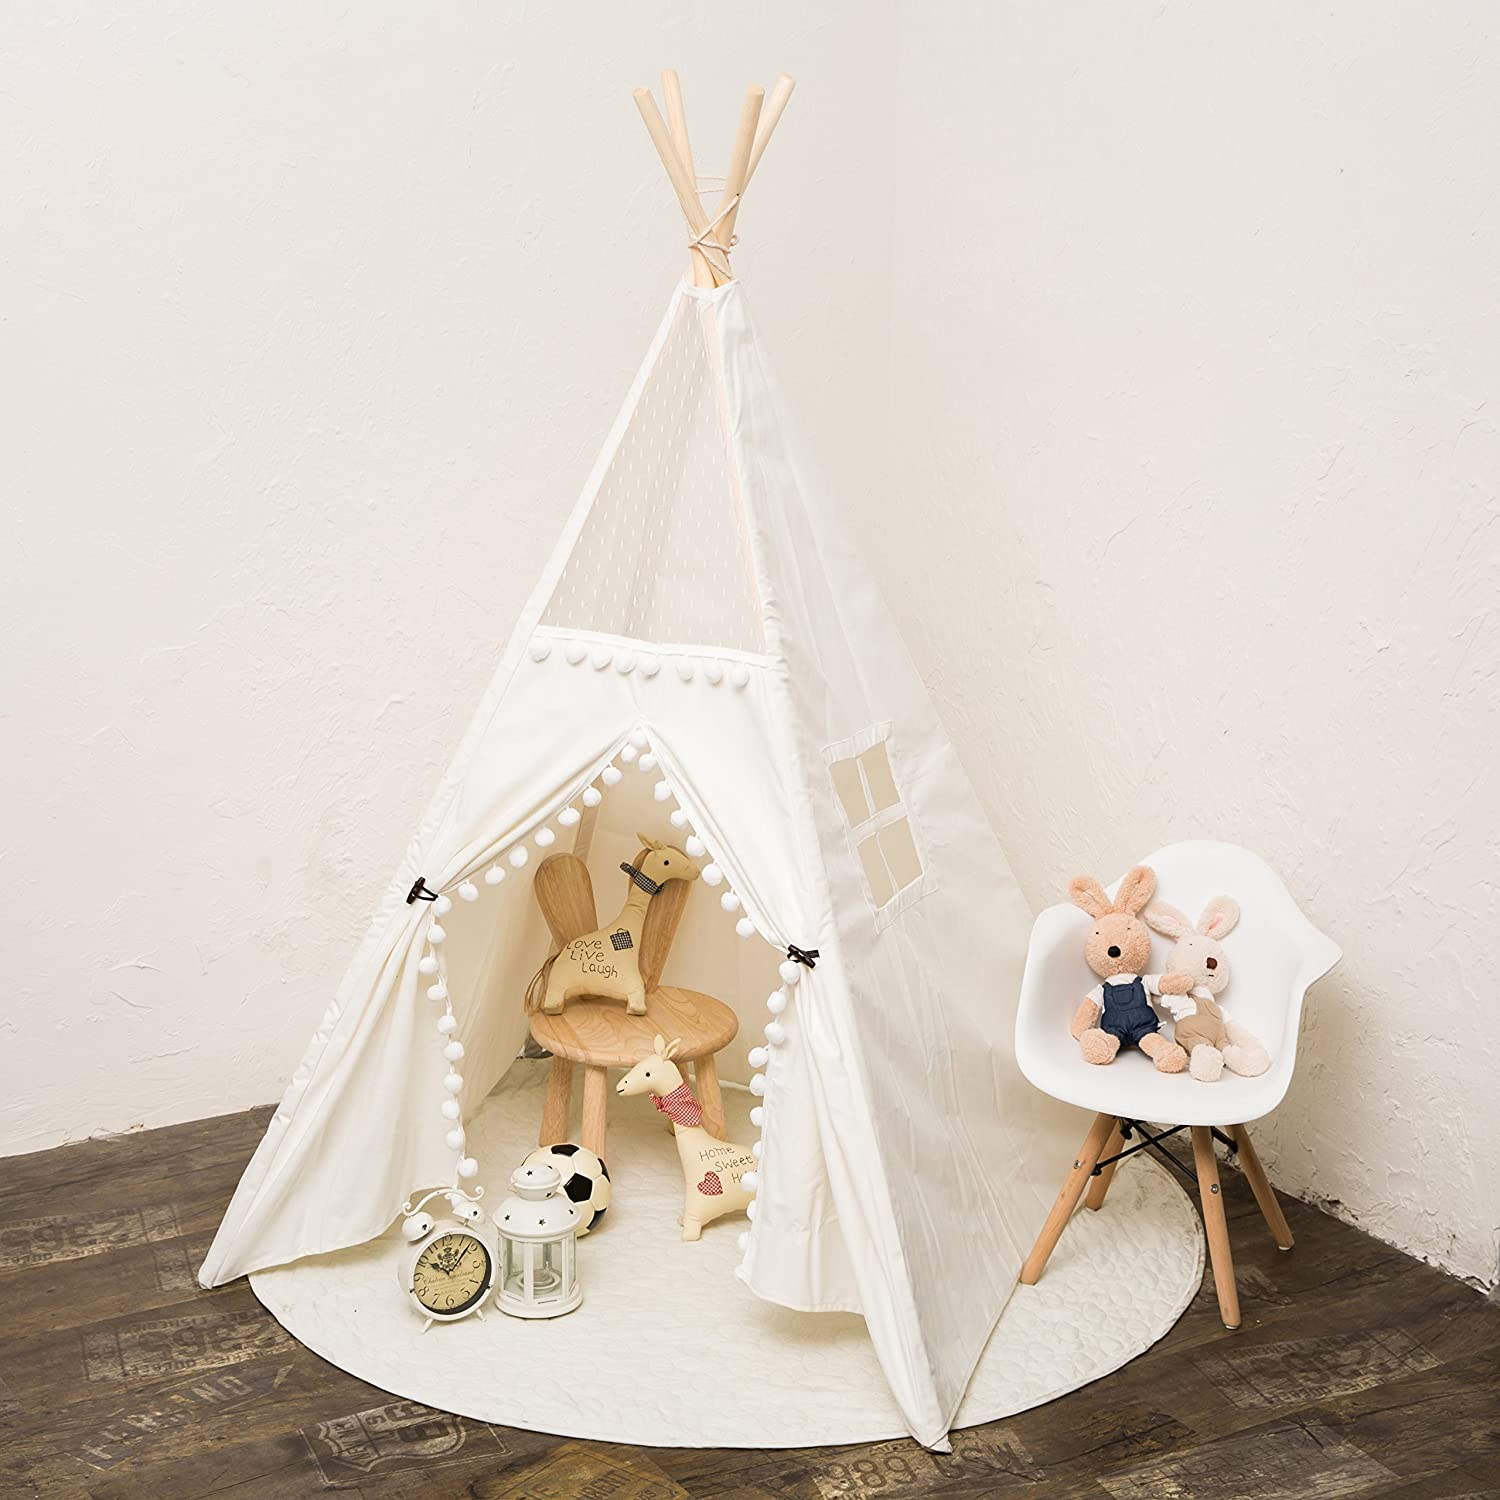 RONG FA Kids Teepee Tent Foldable Teepee Play Tent for Boys and Girls, IndoorOutdoor Cotton Canvas Tent with Lace of High Transmittance(White) (LACE